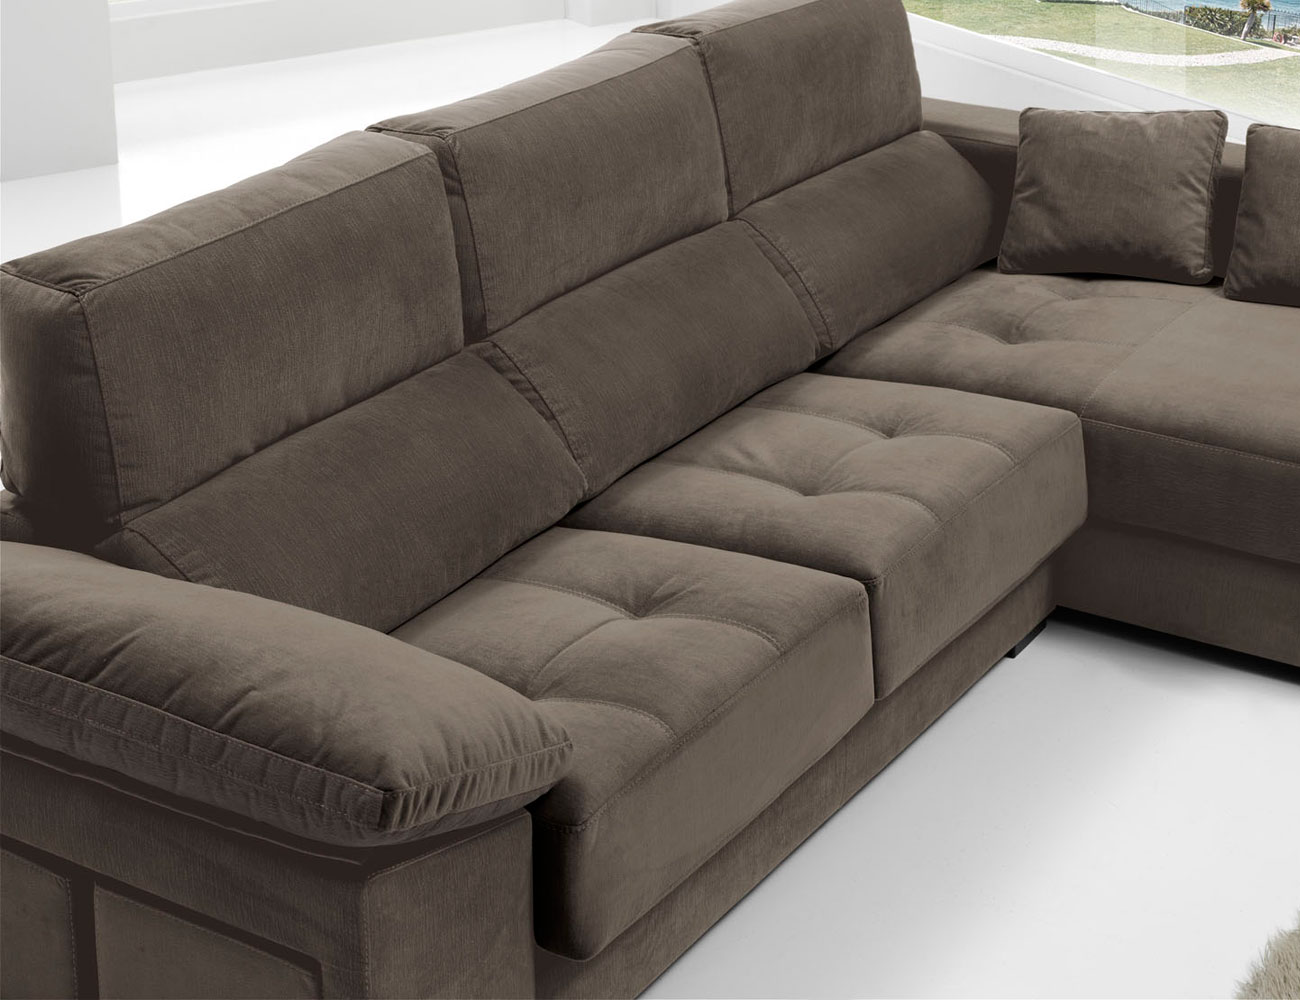 Sofa chaiselongue anti manchas bering pouf 28